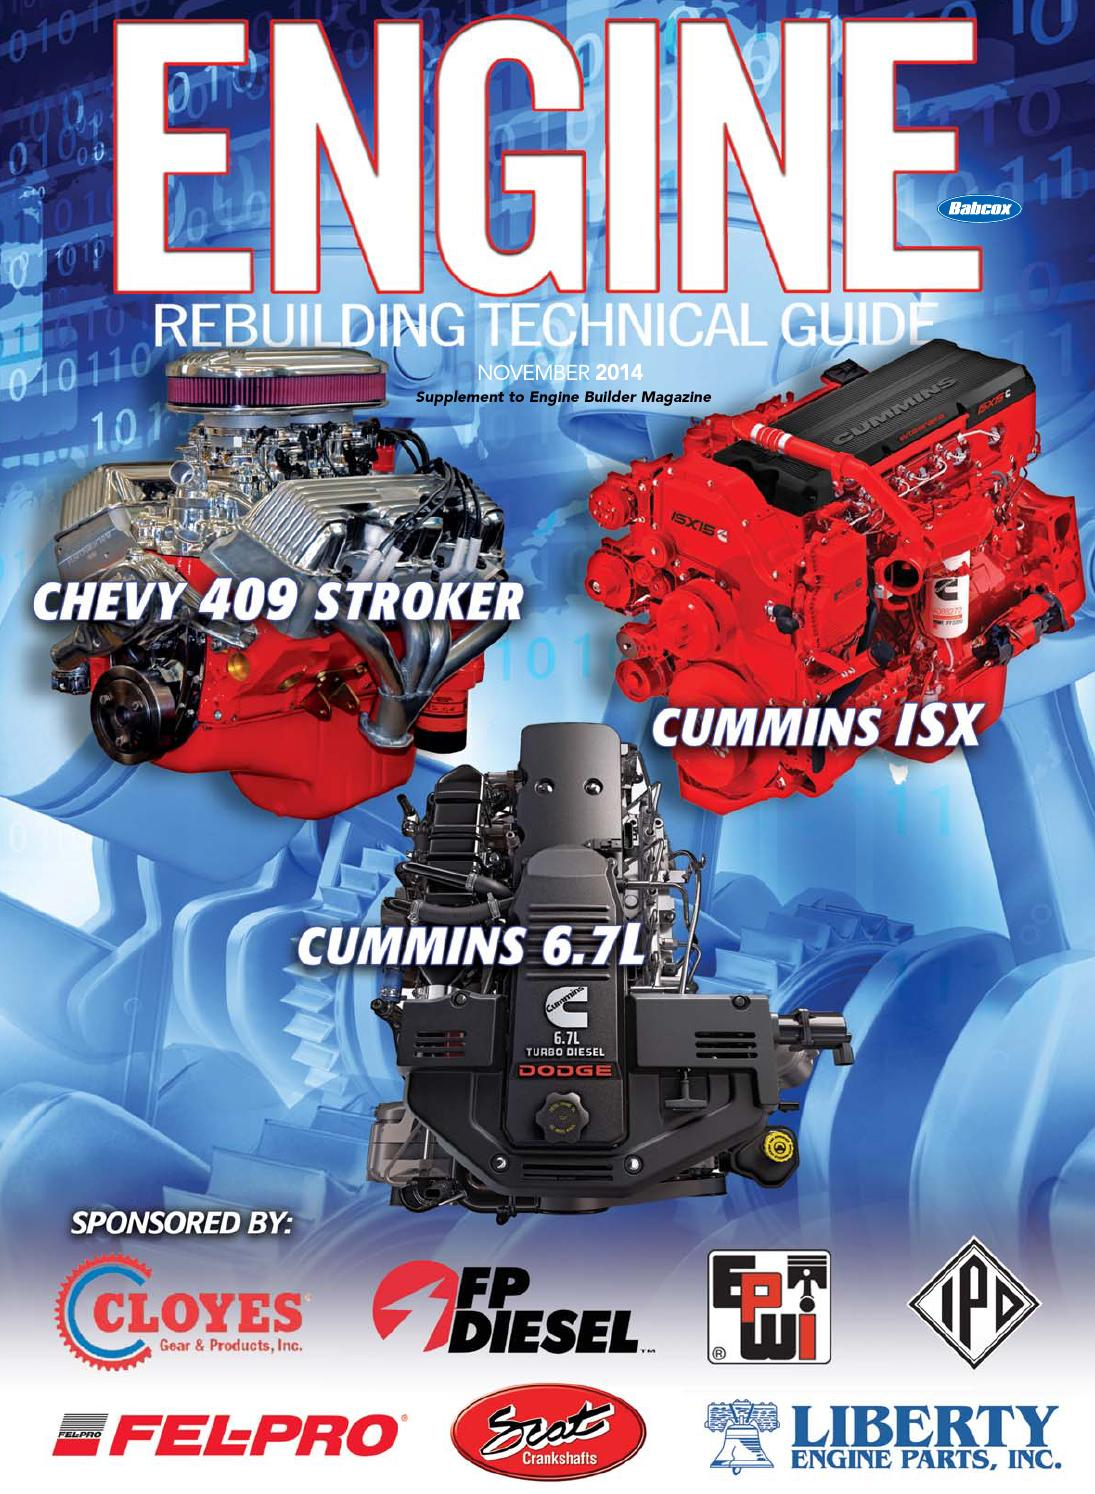 Engine Rebuilding Technical Guide, November 2014 by Babcox